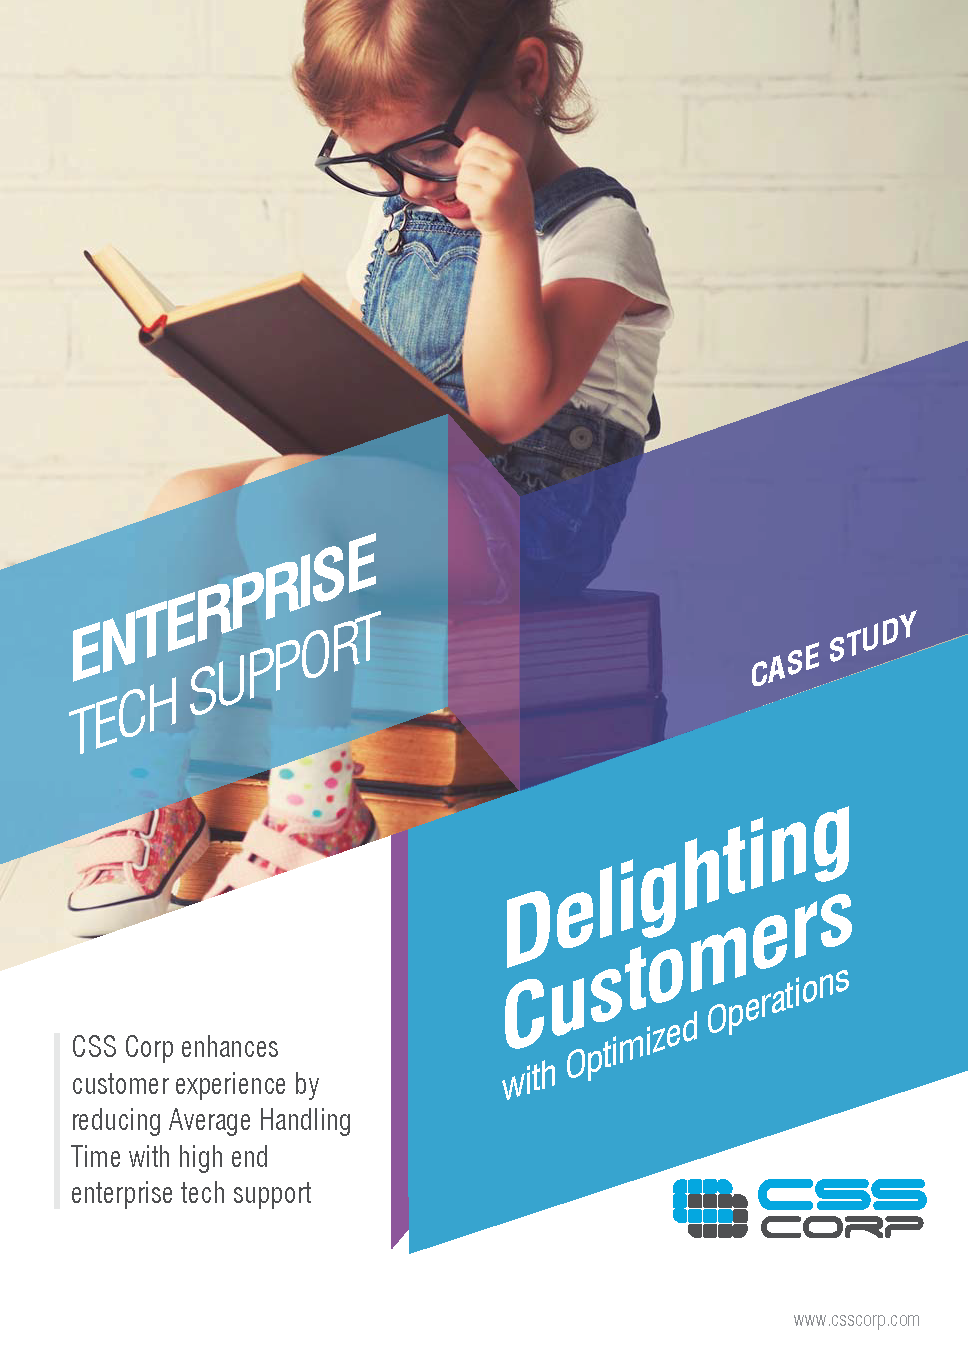 Delighting Customers With Optimized Operations